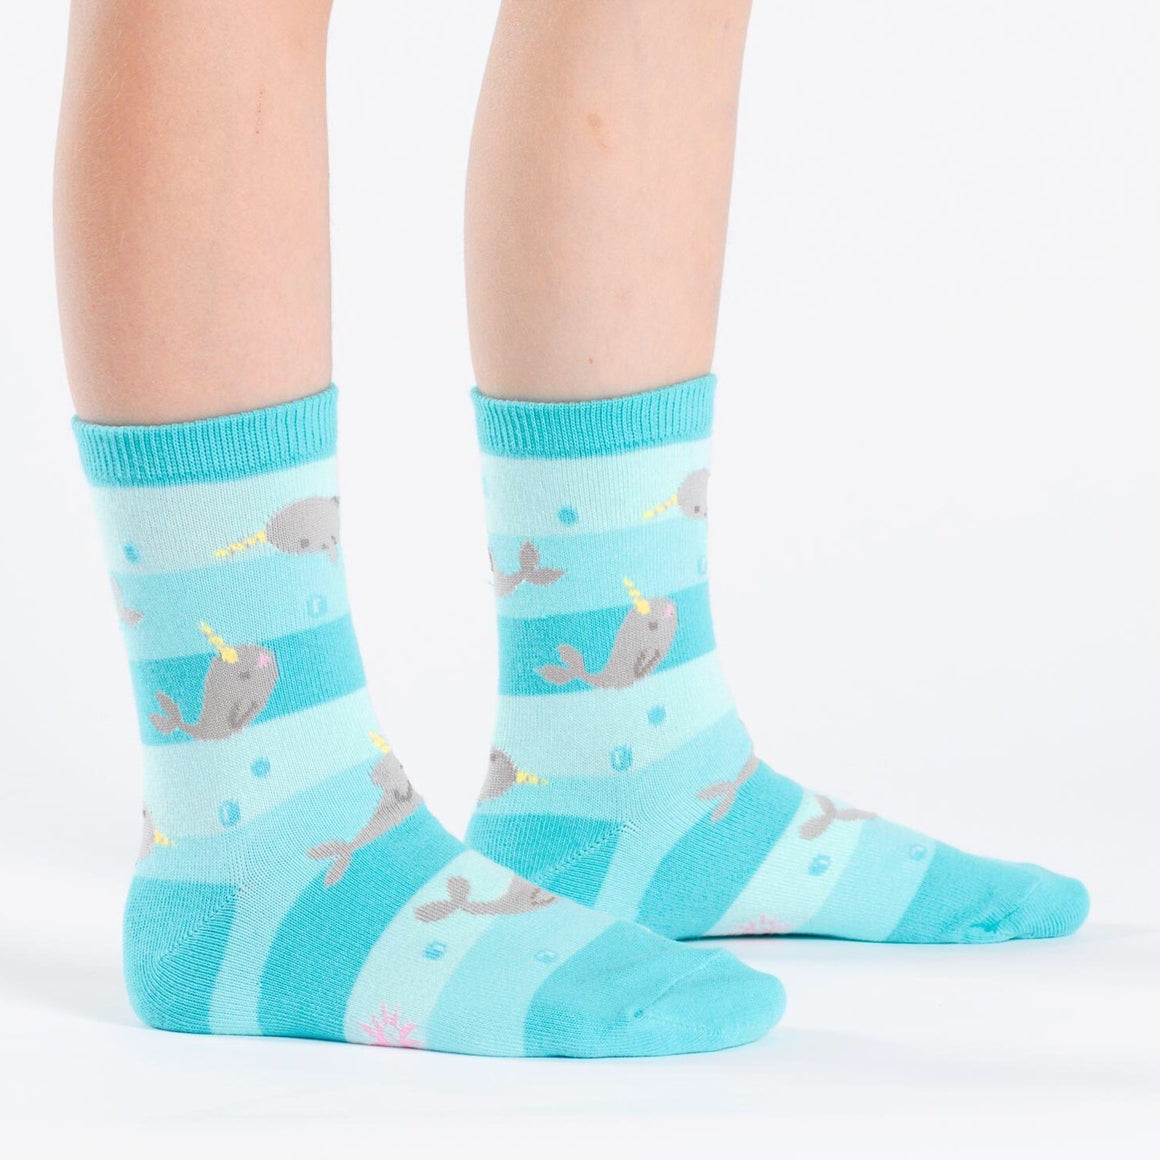 SOCKS - YOUTH CREW UNICORN OF THE SEA, SOCKS, SOCK IT TO ME - Bon + Co. Party Studio